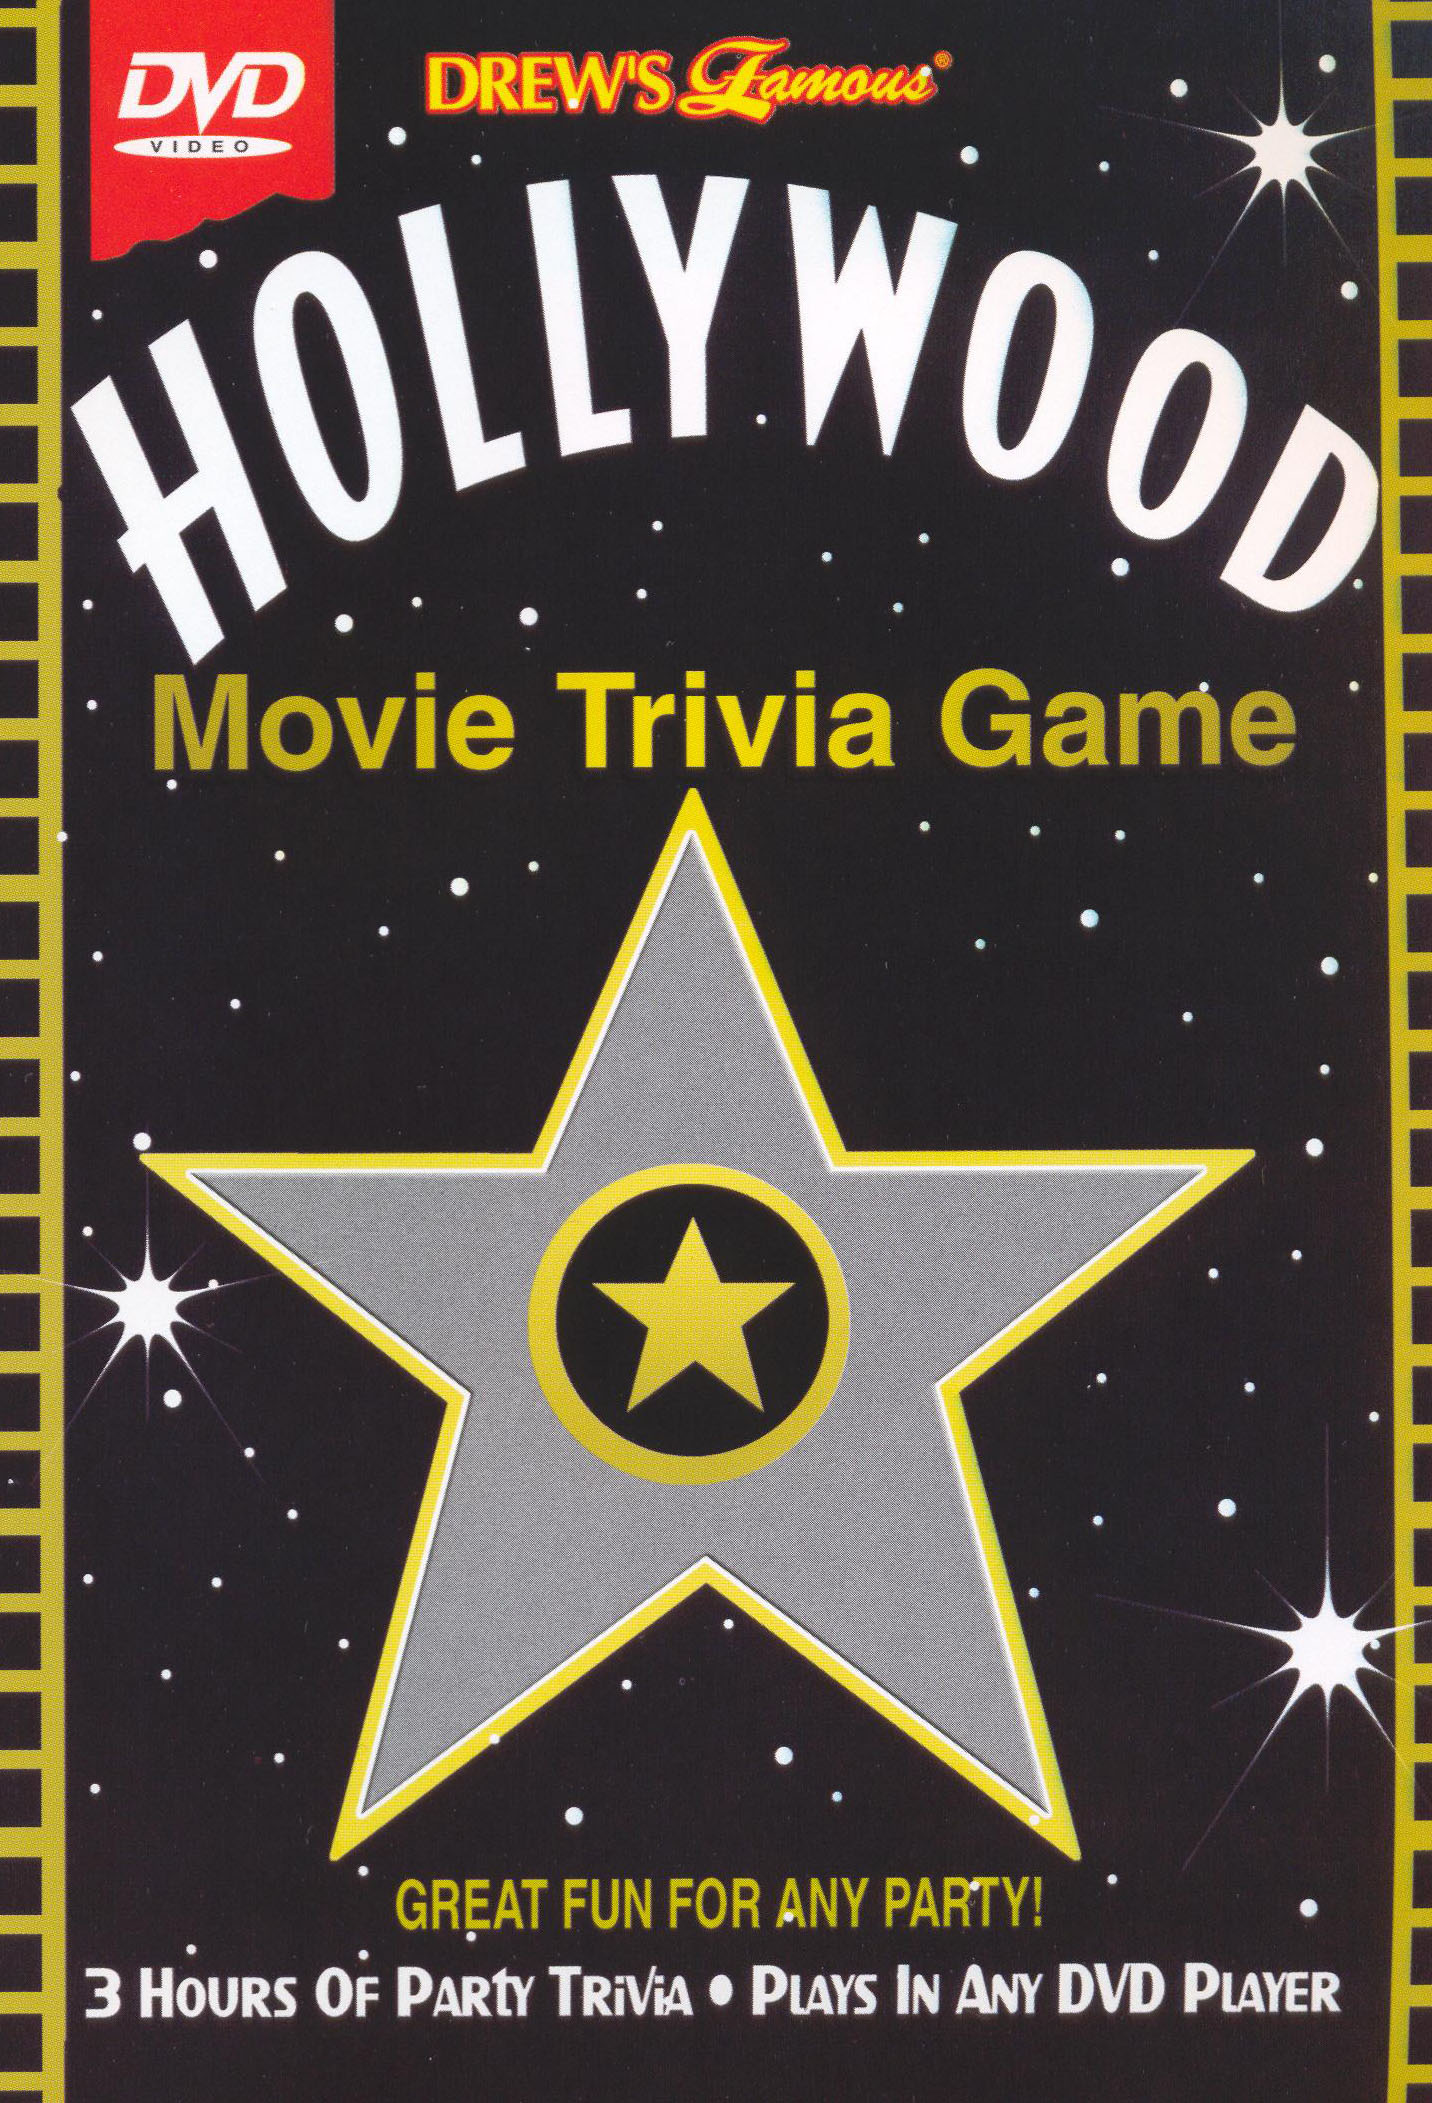 Drew's Famous Hollywood Trivia